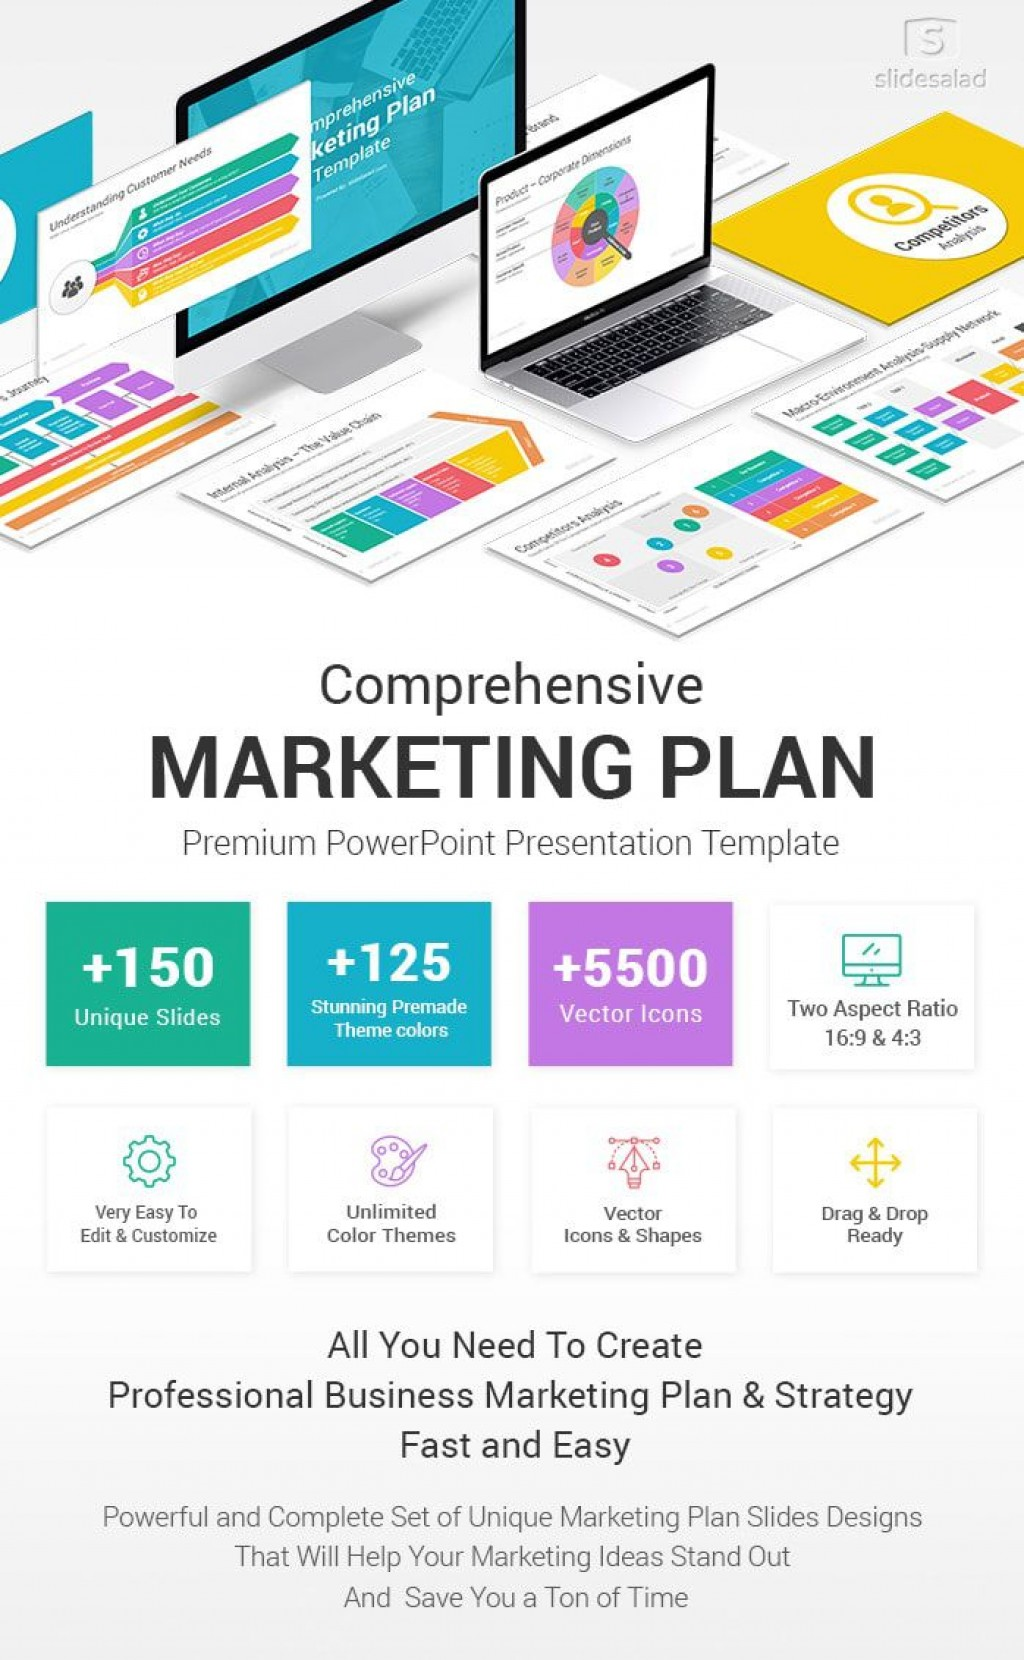 002 Impressive Product Launch Plan Powerpoint Template Free Concept Large